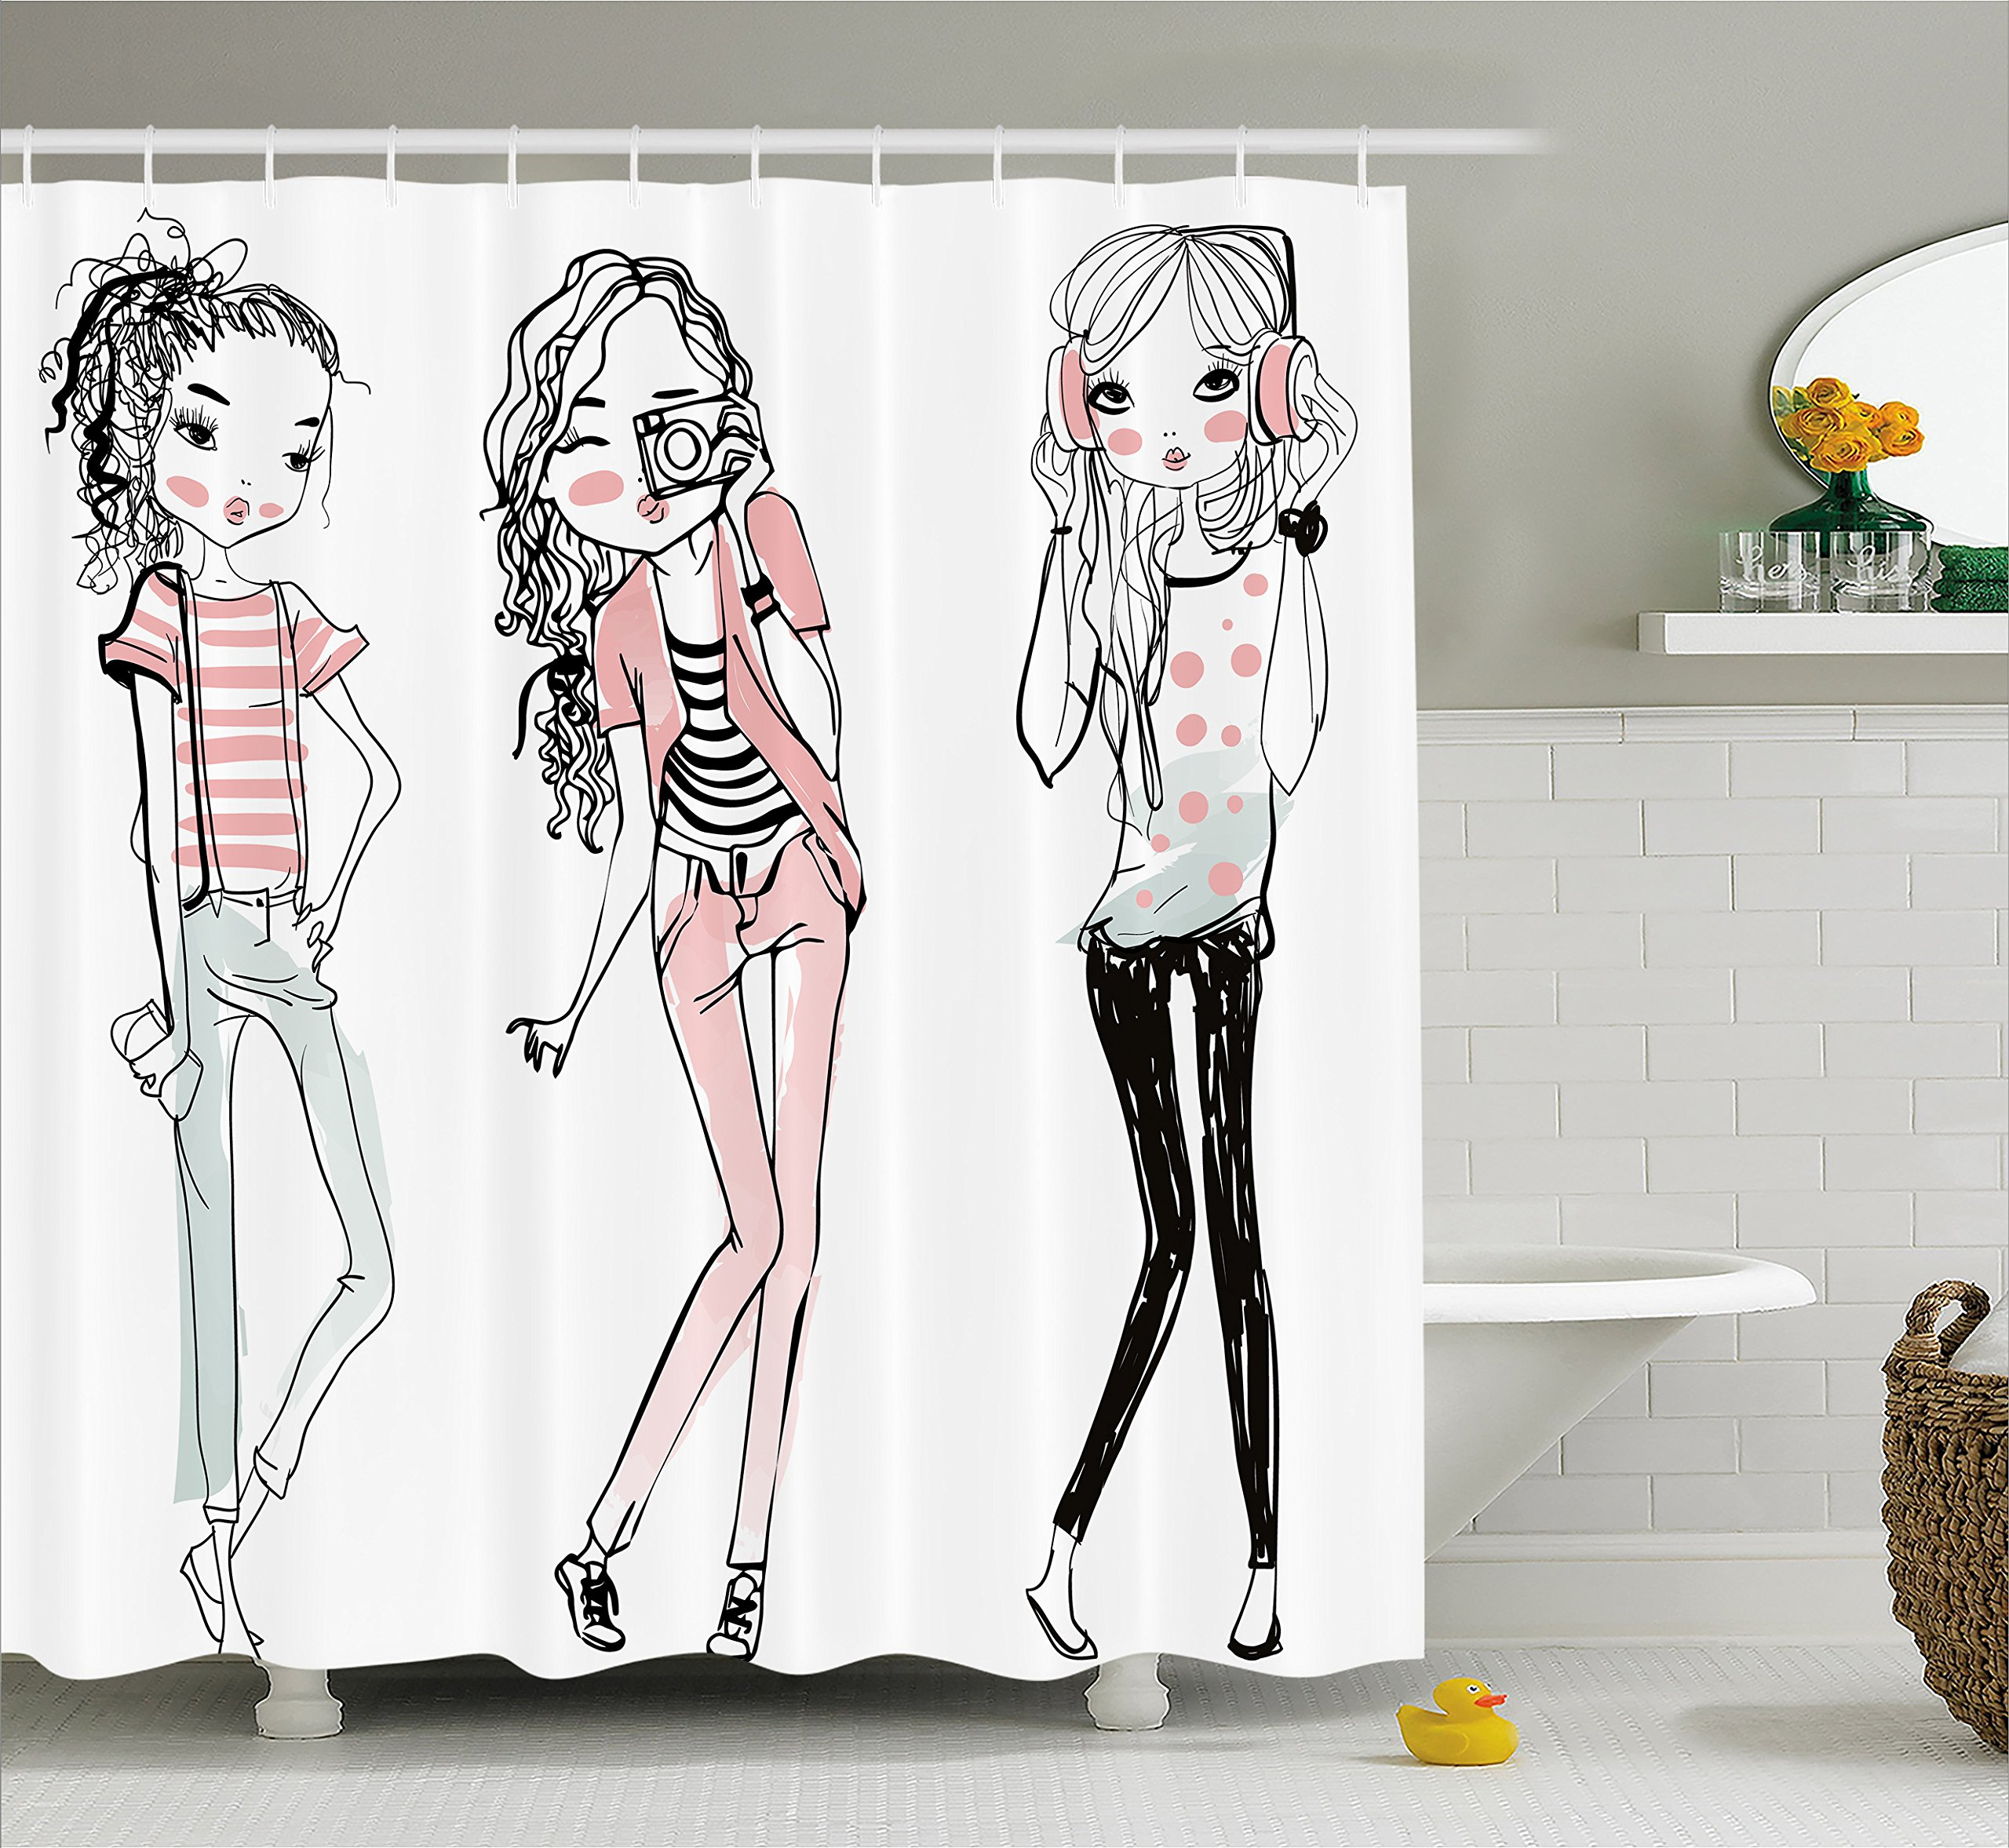 Ambesonne Girls Shower Curtain, Sketch Cute Cartoon Design Girls with Makeup Clothes Illustration Image, Fabric Bathroom Decor Set with Hooks, 70 Inches, Black Pale Pink White